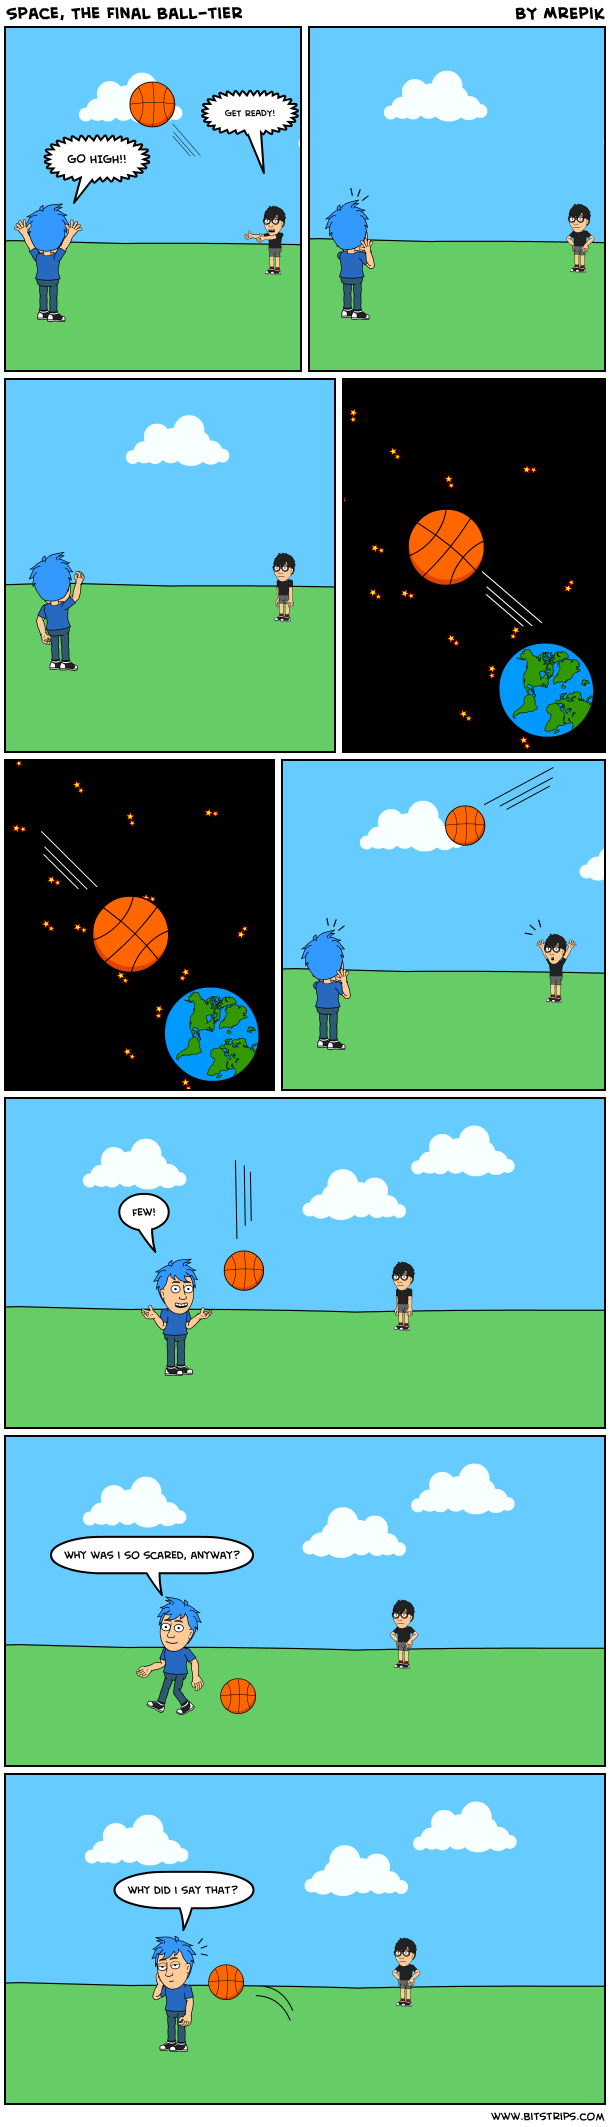 Space, The Final Ball-tier